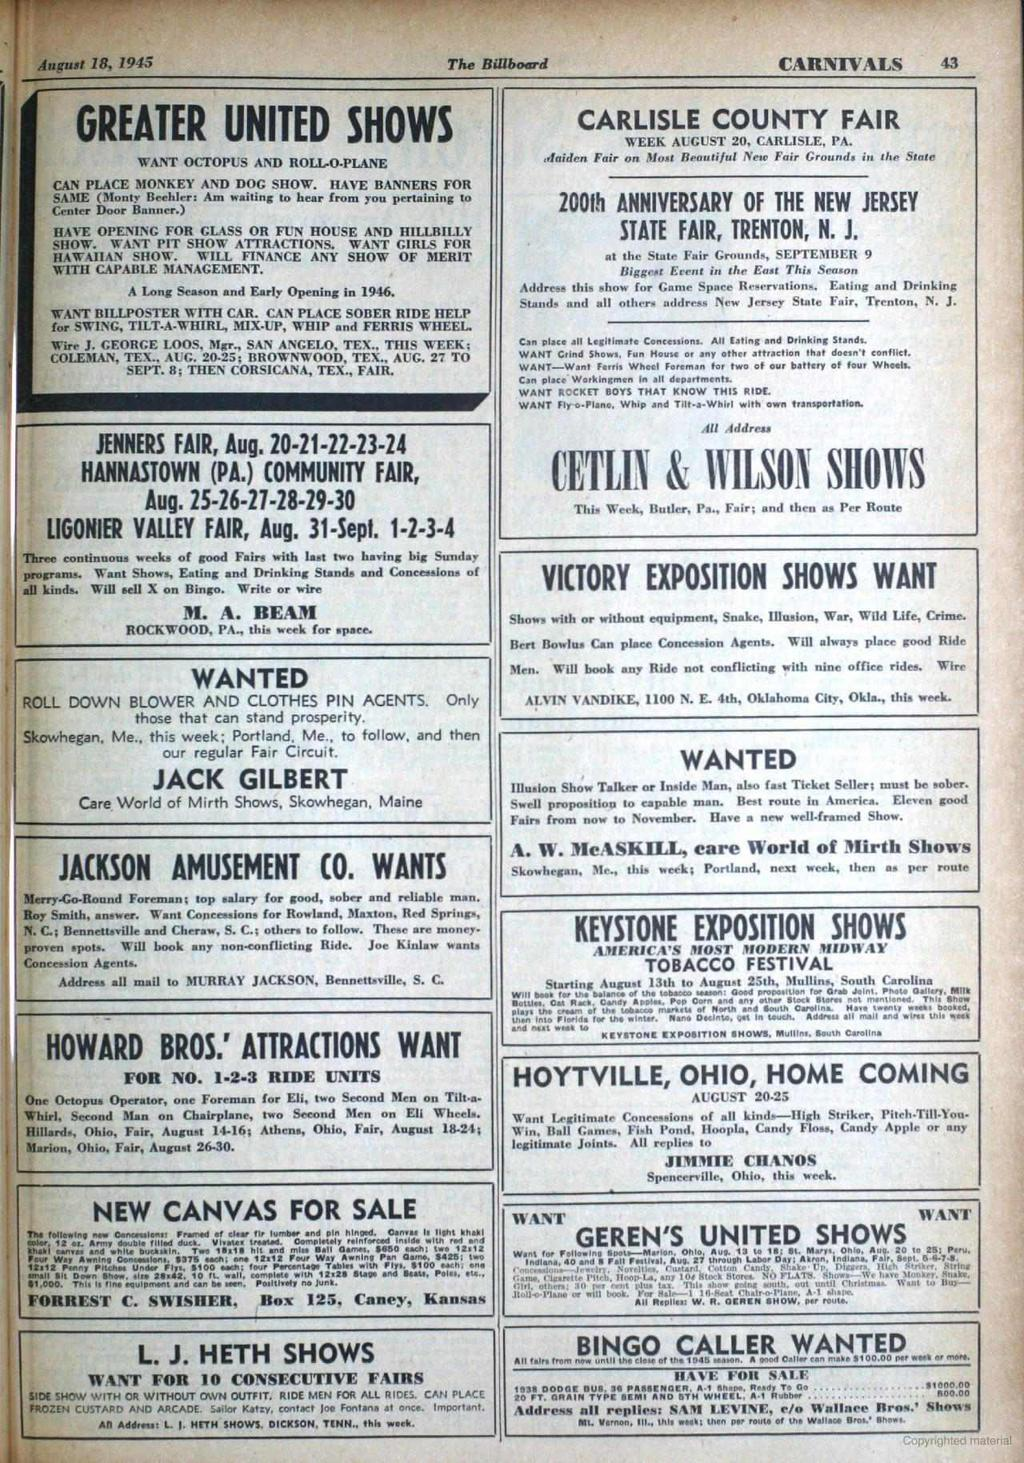 hight resolution of august 18 1945 the billboard carnivals 43 greater united shows want octopus and rollo